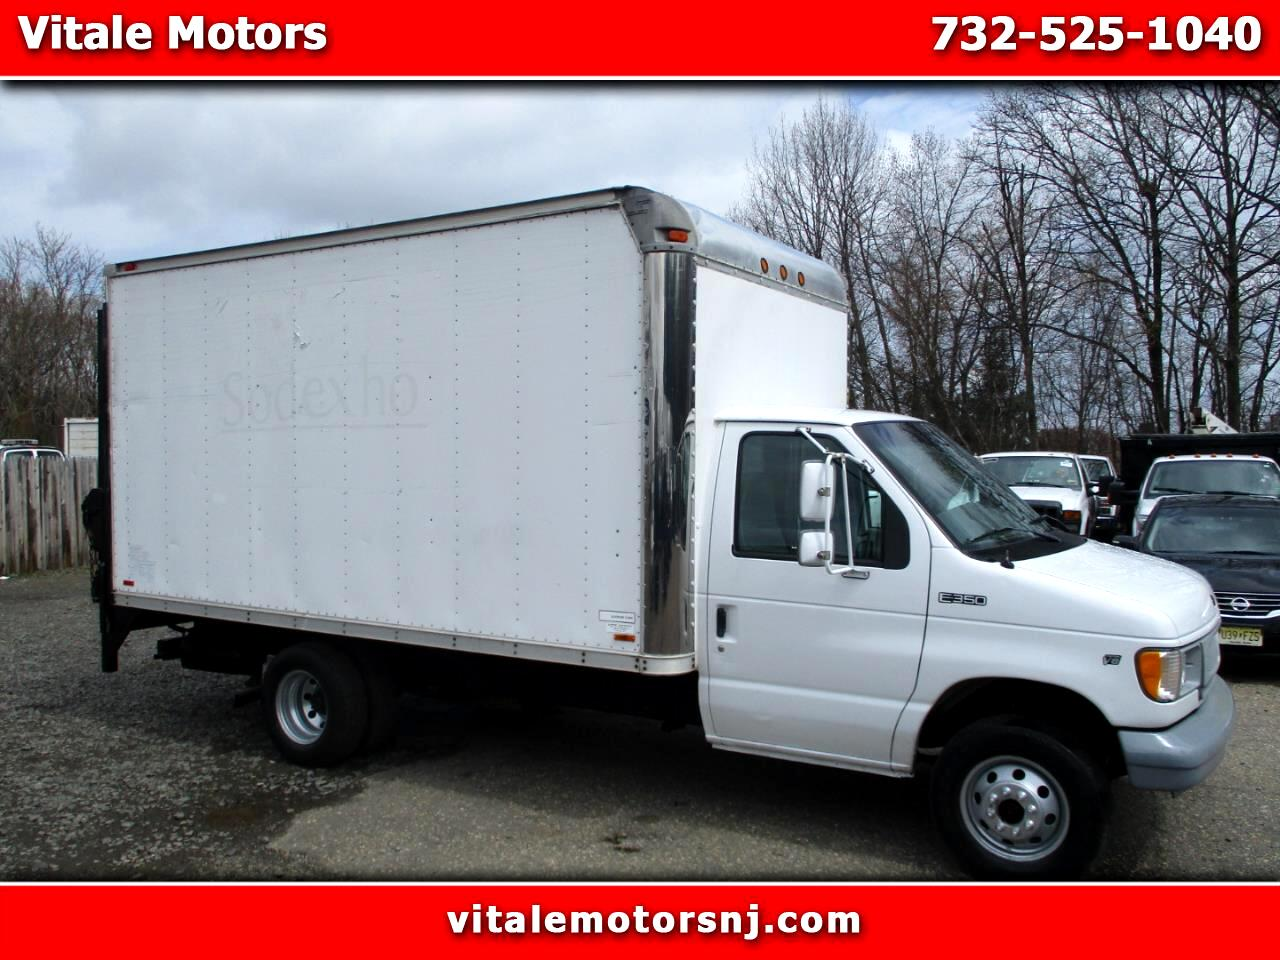 1998 Ford Econoline E-350 14' BOX TRUCK W/LIFT GATE **26K MILES**